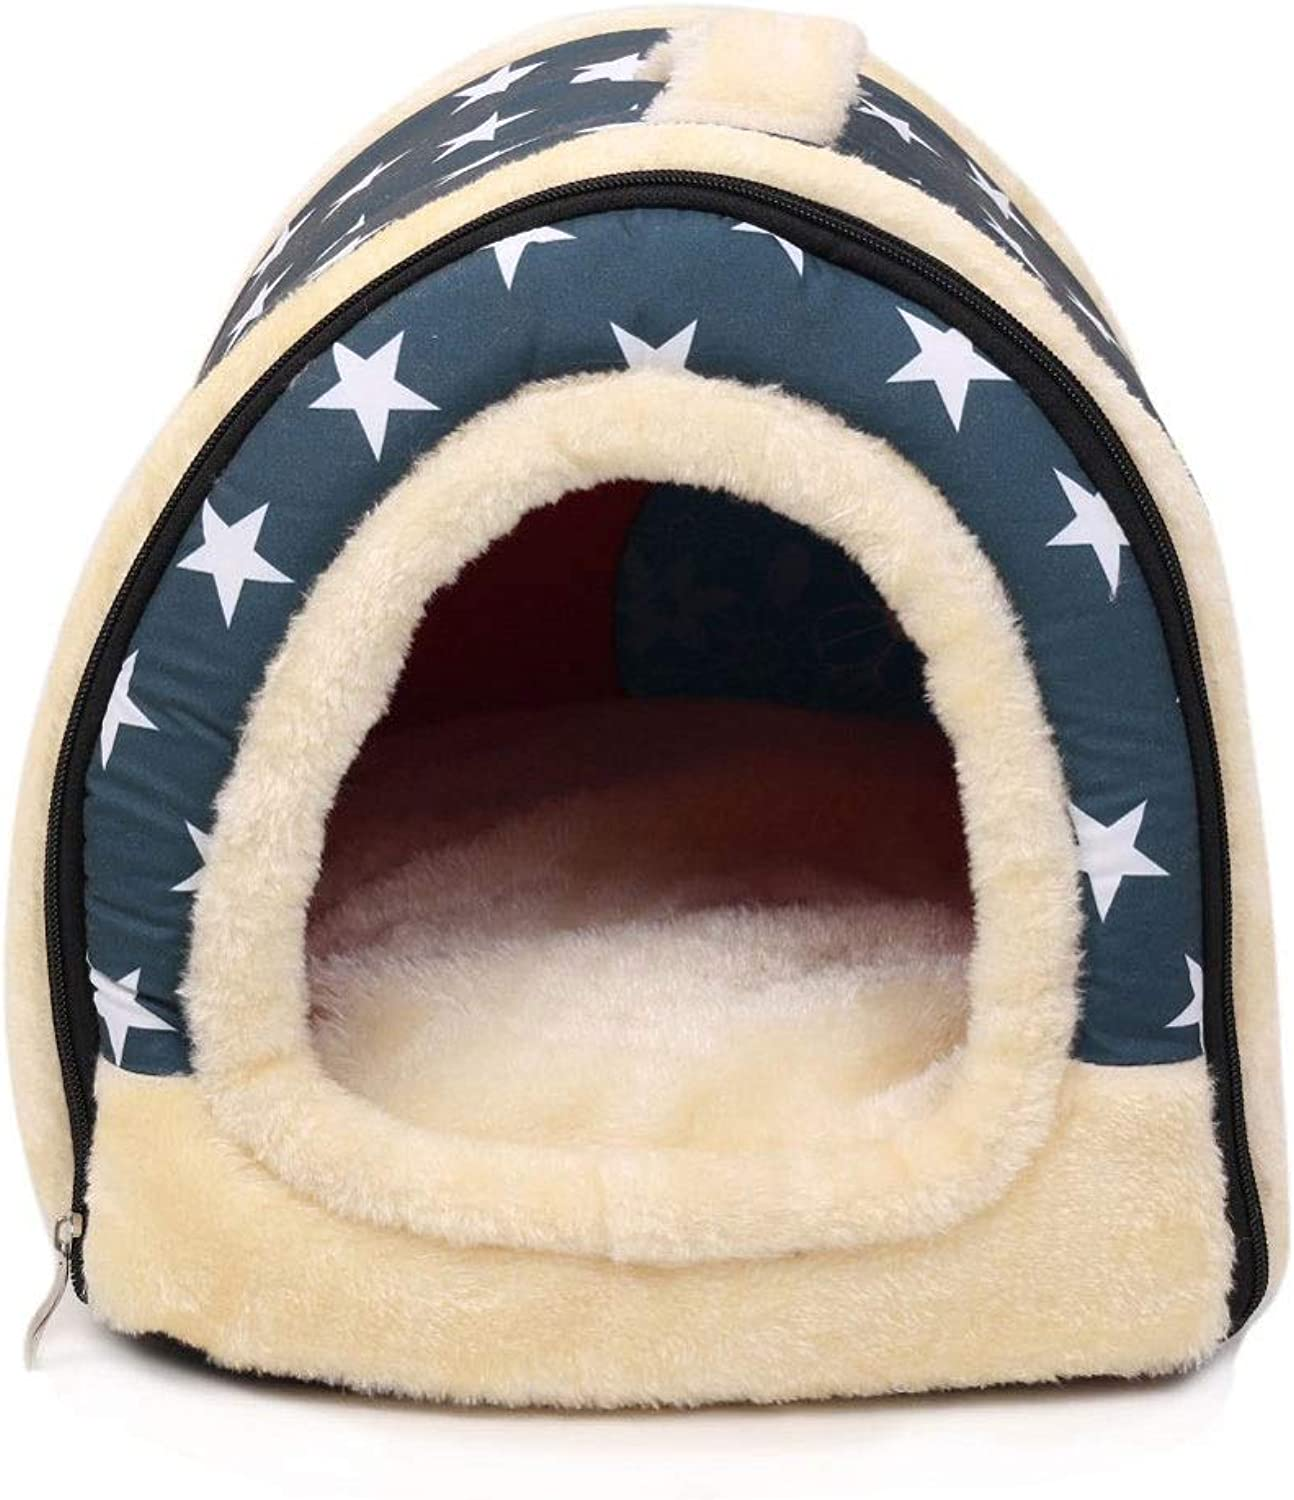 ZHIYINGTIANXIA Soft Warm Star Pattern Pet Nest Non-Slip Dog Cat Bed Foldable Winter Soft Cozy Sleeping Bag Mat Pad Cushions Breathable Cotton Blend Cover That is Removable-Small